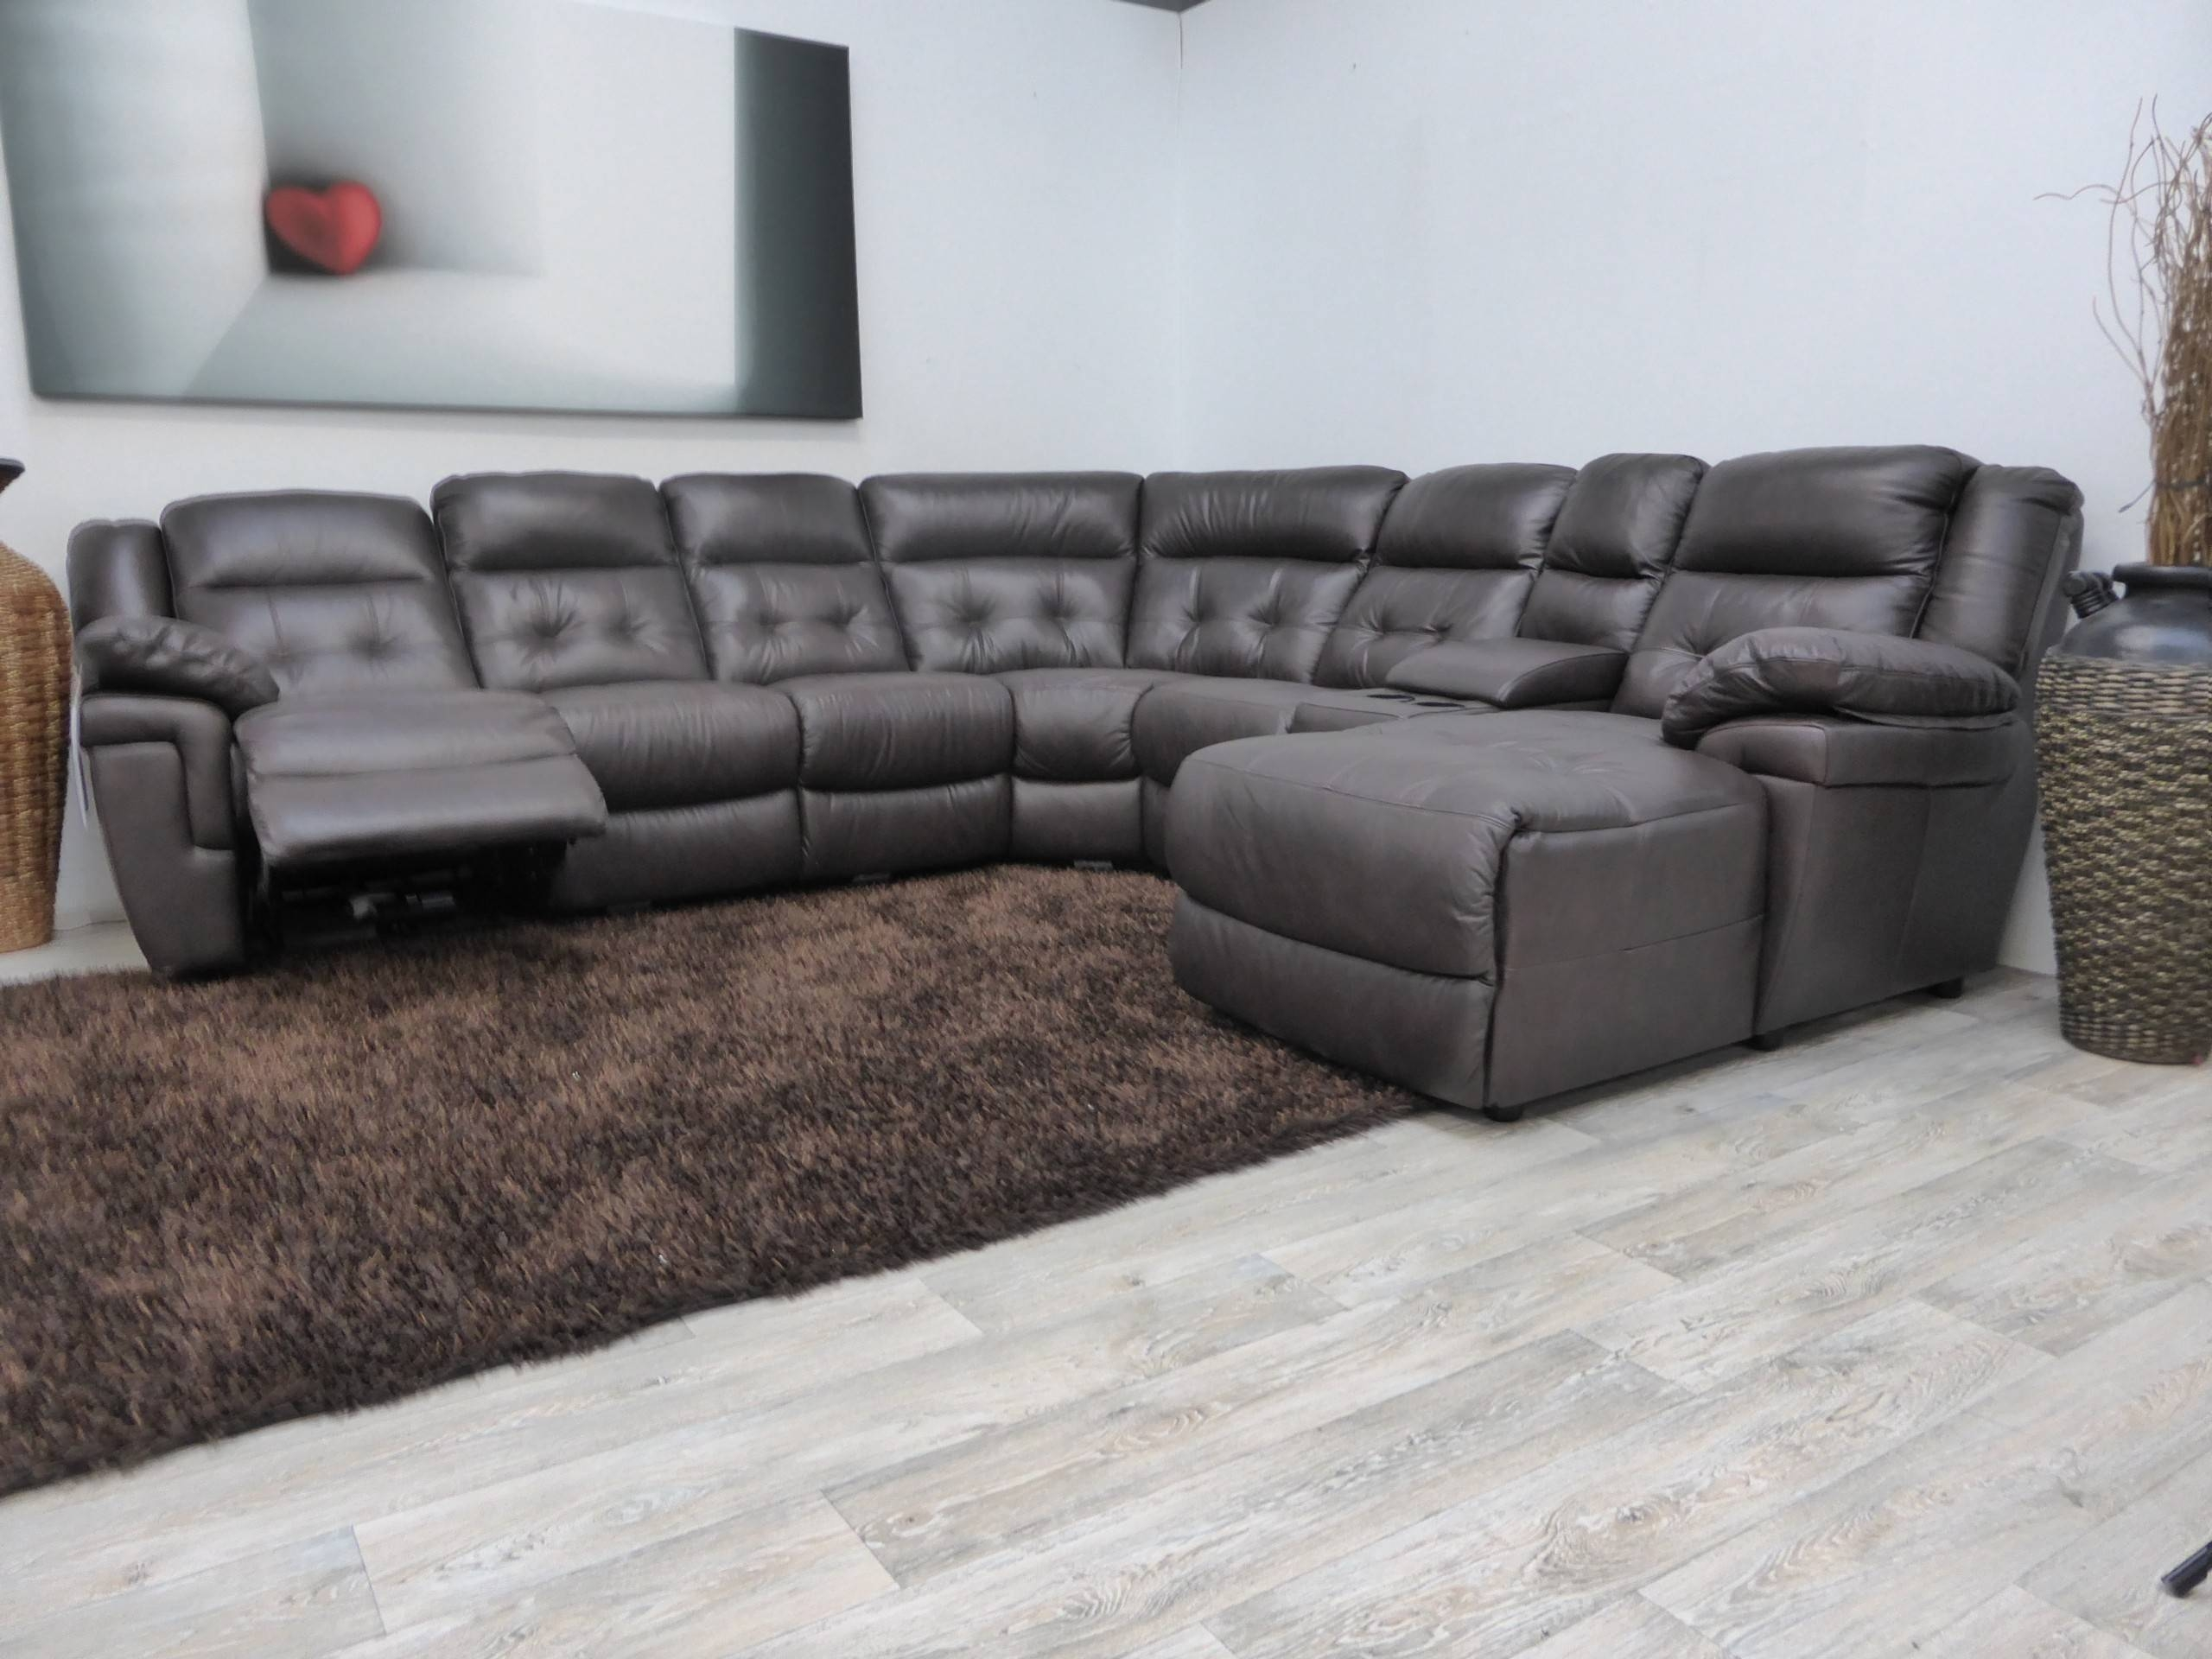 Furniture: Sofa Recliner Covers | Couch Arm Covers | Sofa Slip Covers throughout Slipcovers for Sectional Sofas With Recliners (Image 19 of 30)